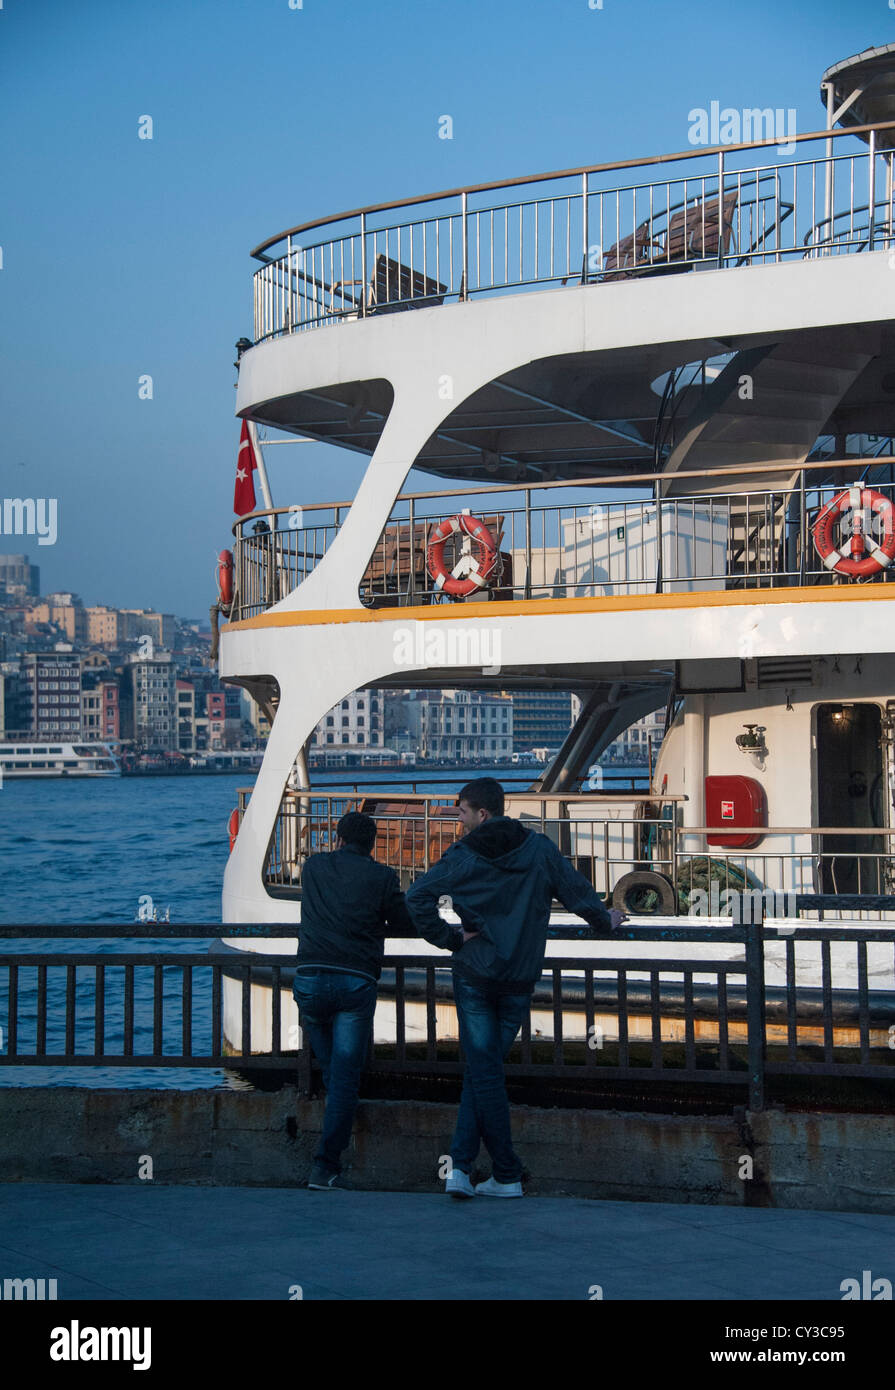 Ferry at the dock in Eminönü or Golden Horn part of Istanbul Turkey - Stock Image